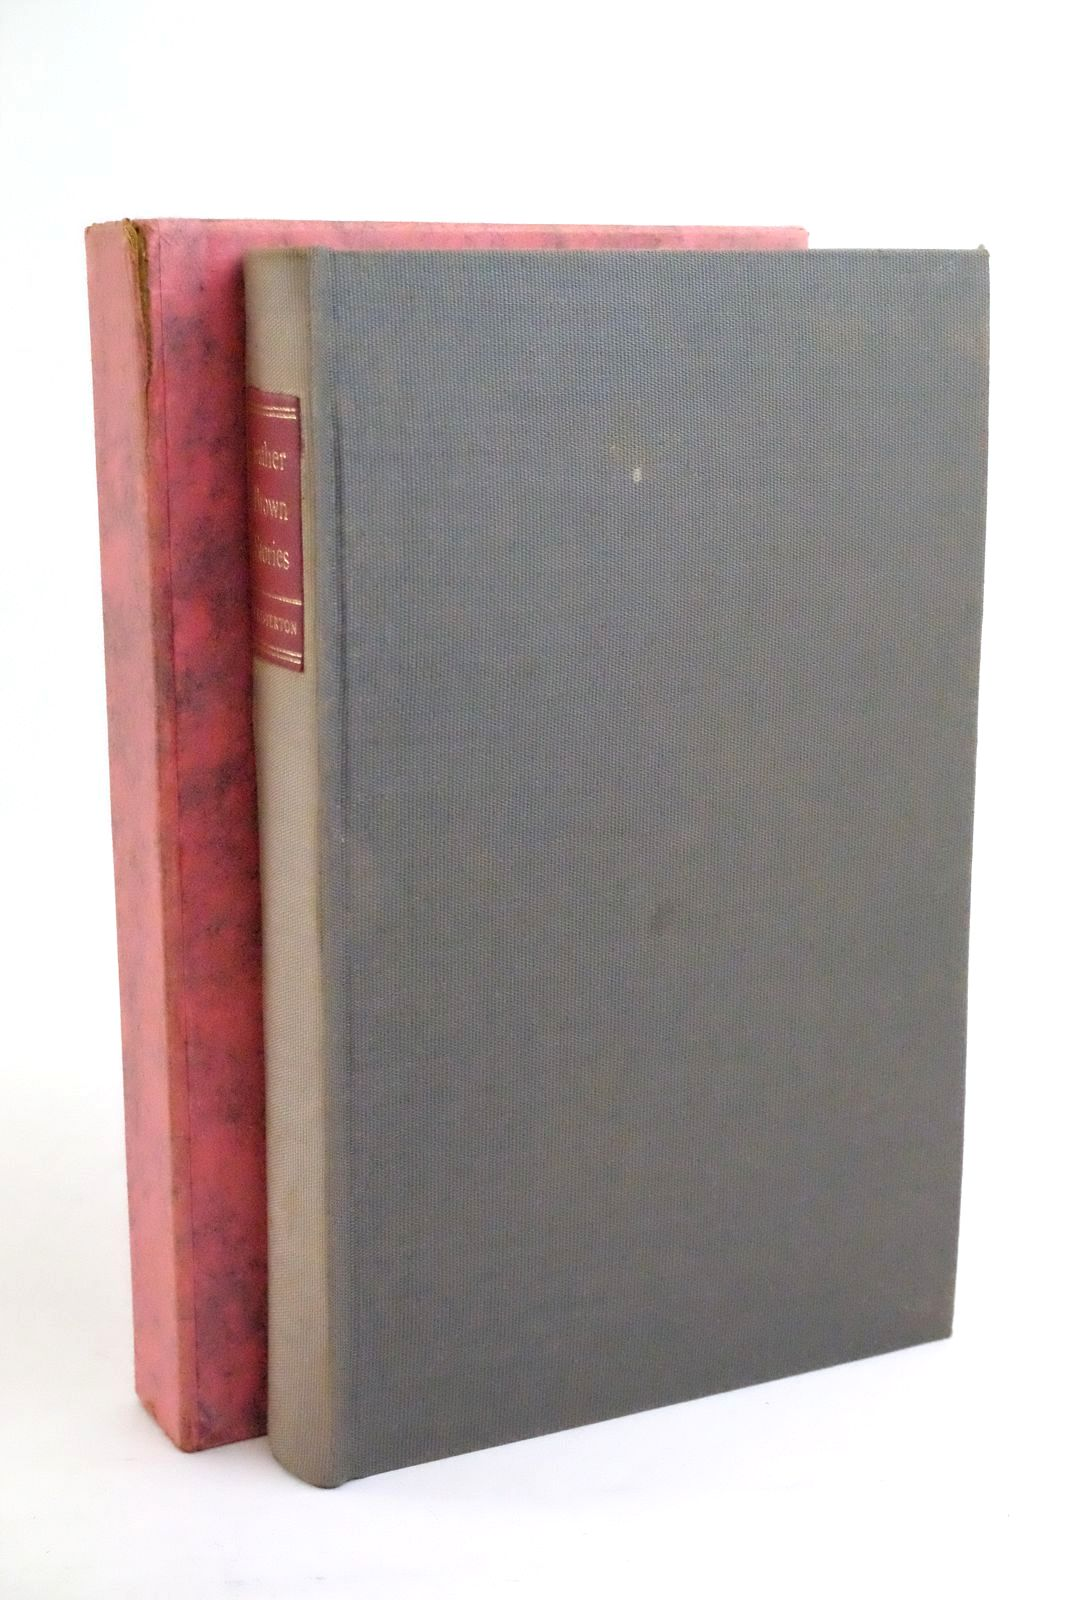 Photo of FATHER BROWN STORIES written by Chesterton, G.K. illustrated by Ardizzone, Edward published by Folio Society (STOCK CODE: 1321275)  for sale by Stella & Rose's Books